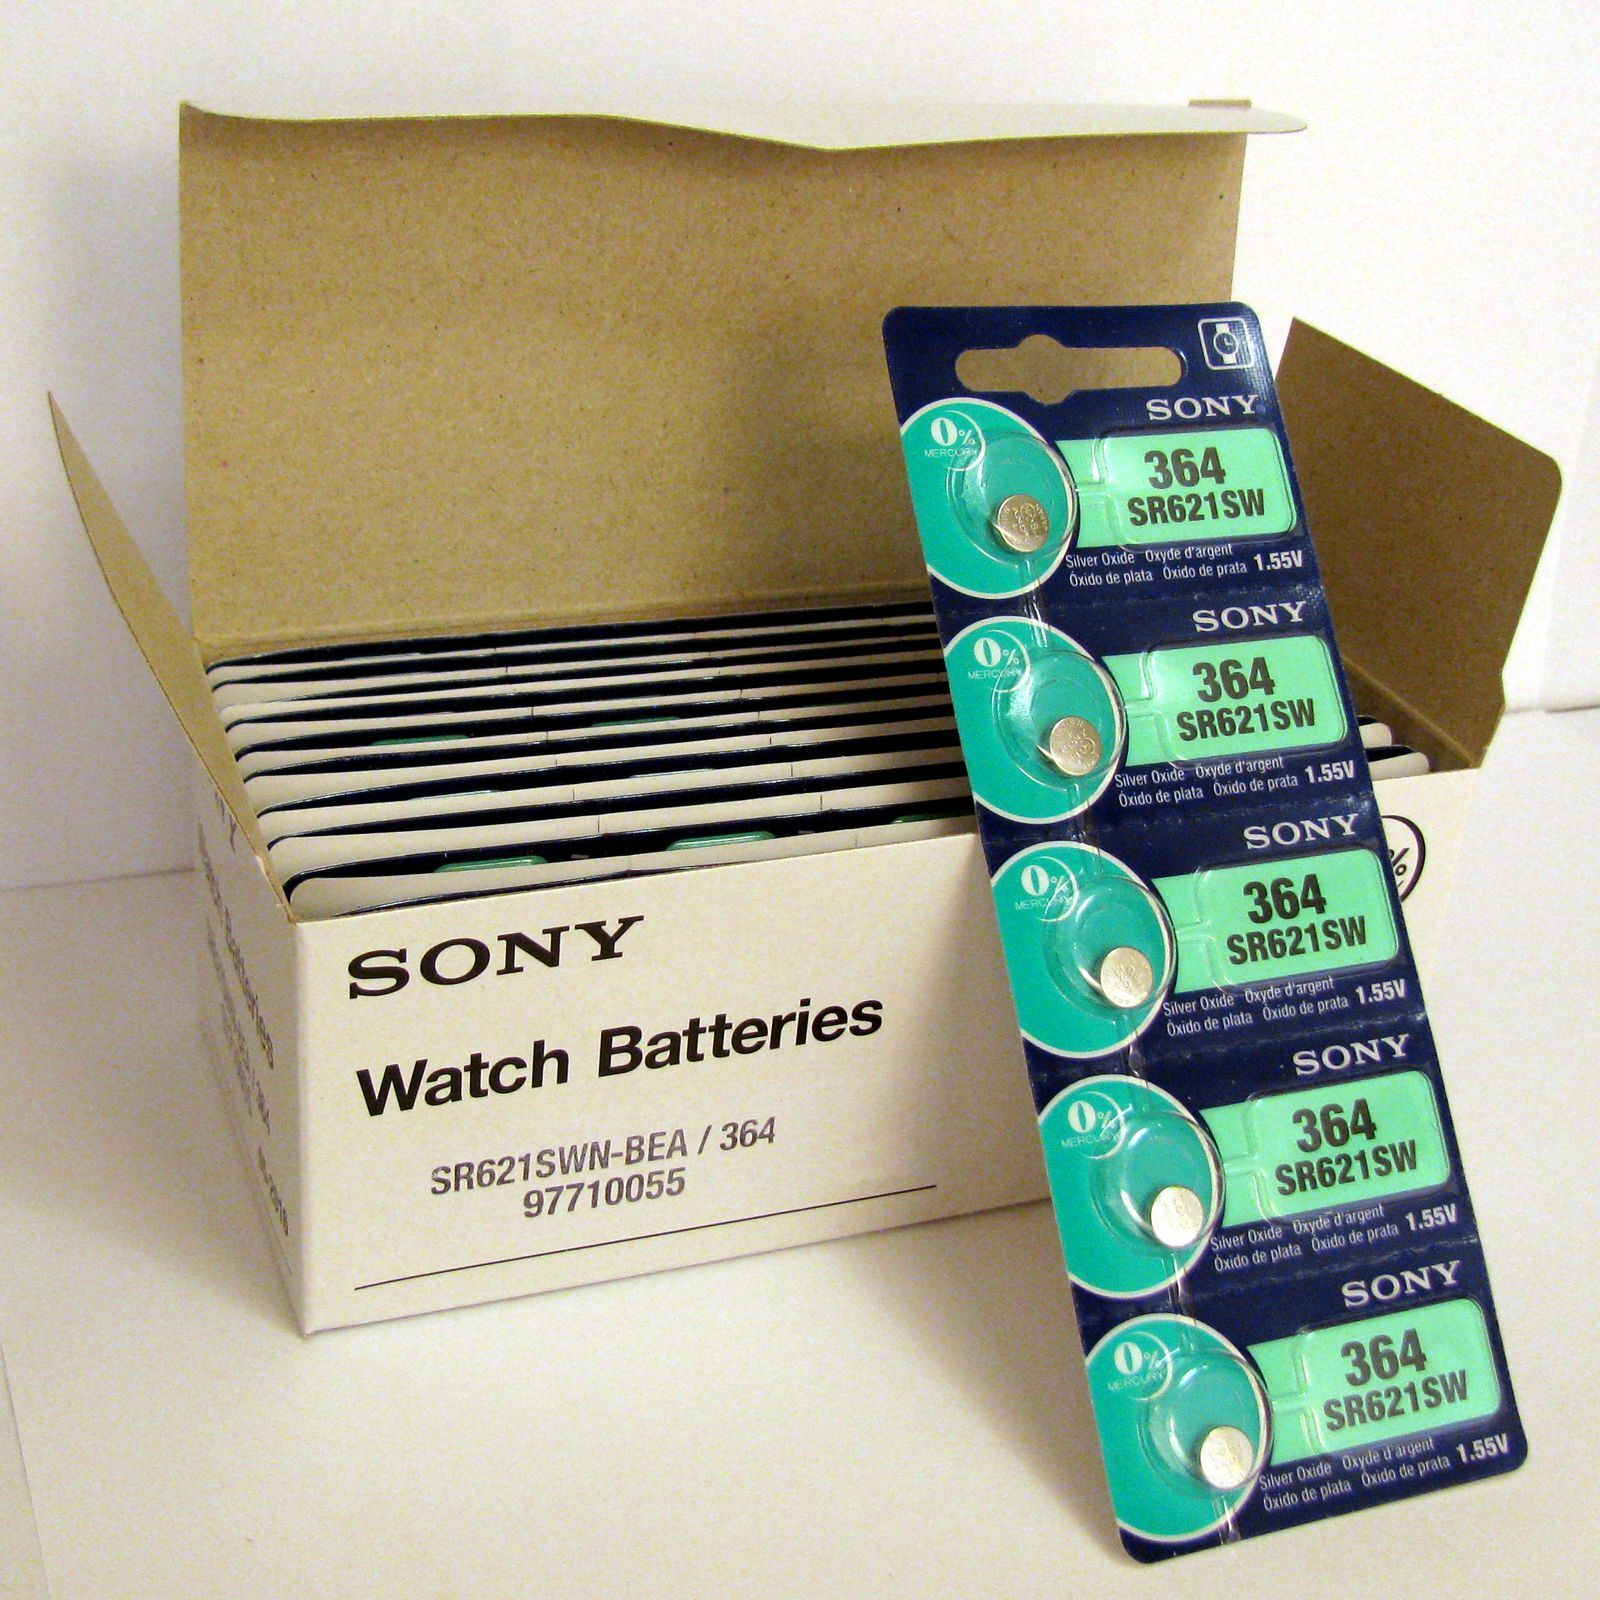 5 NEW SONY 364 SR621SW SR621 V364 LR621 SR60 Watch Battery EXP 03-2021 - FRESH